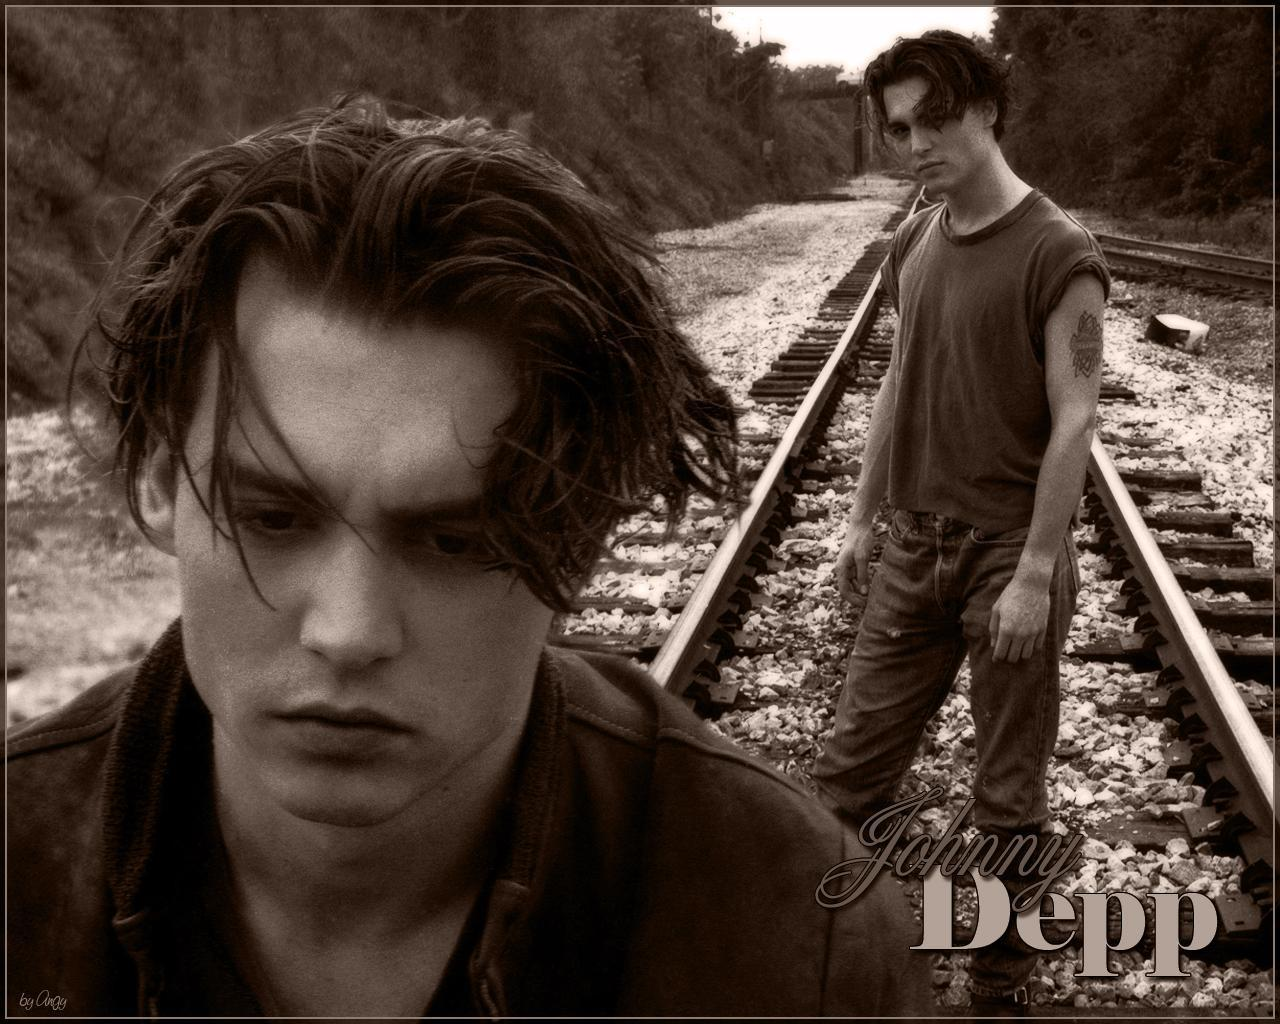 Johnny Depp - Wallpaper Hot